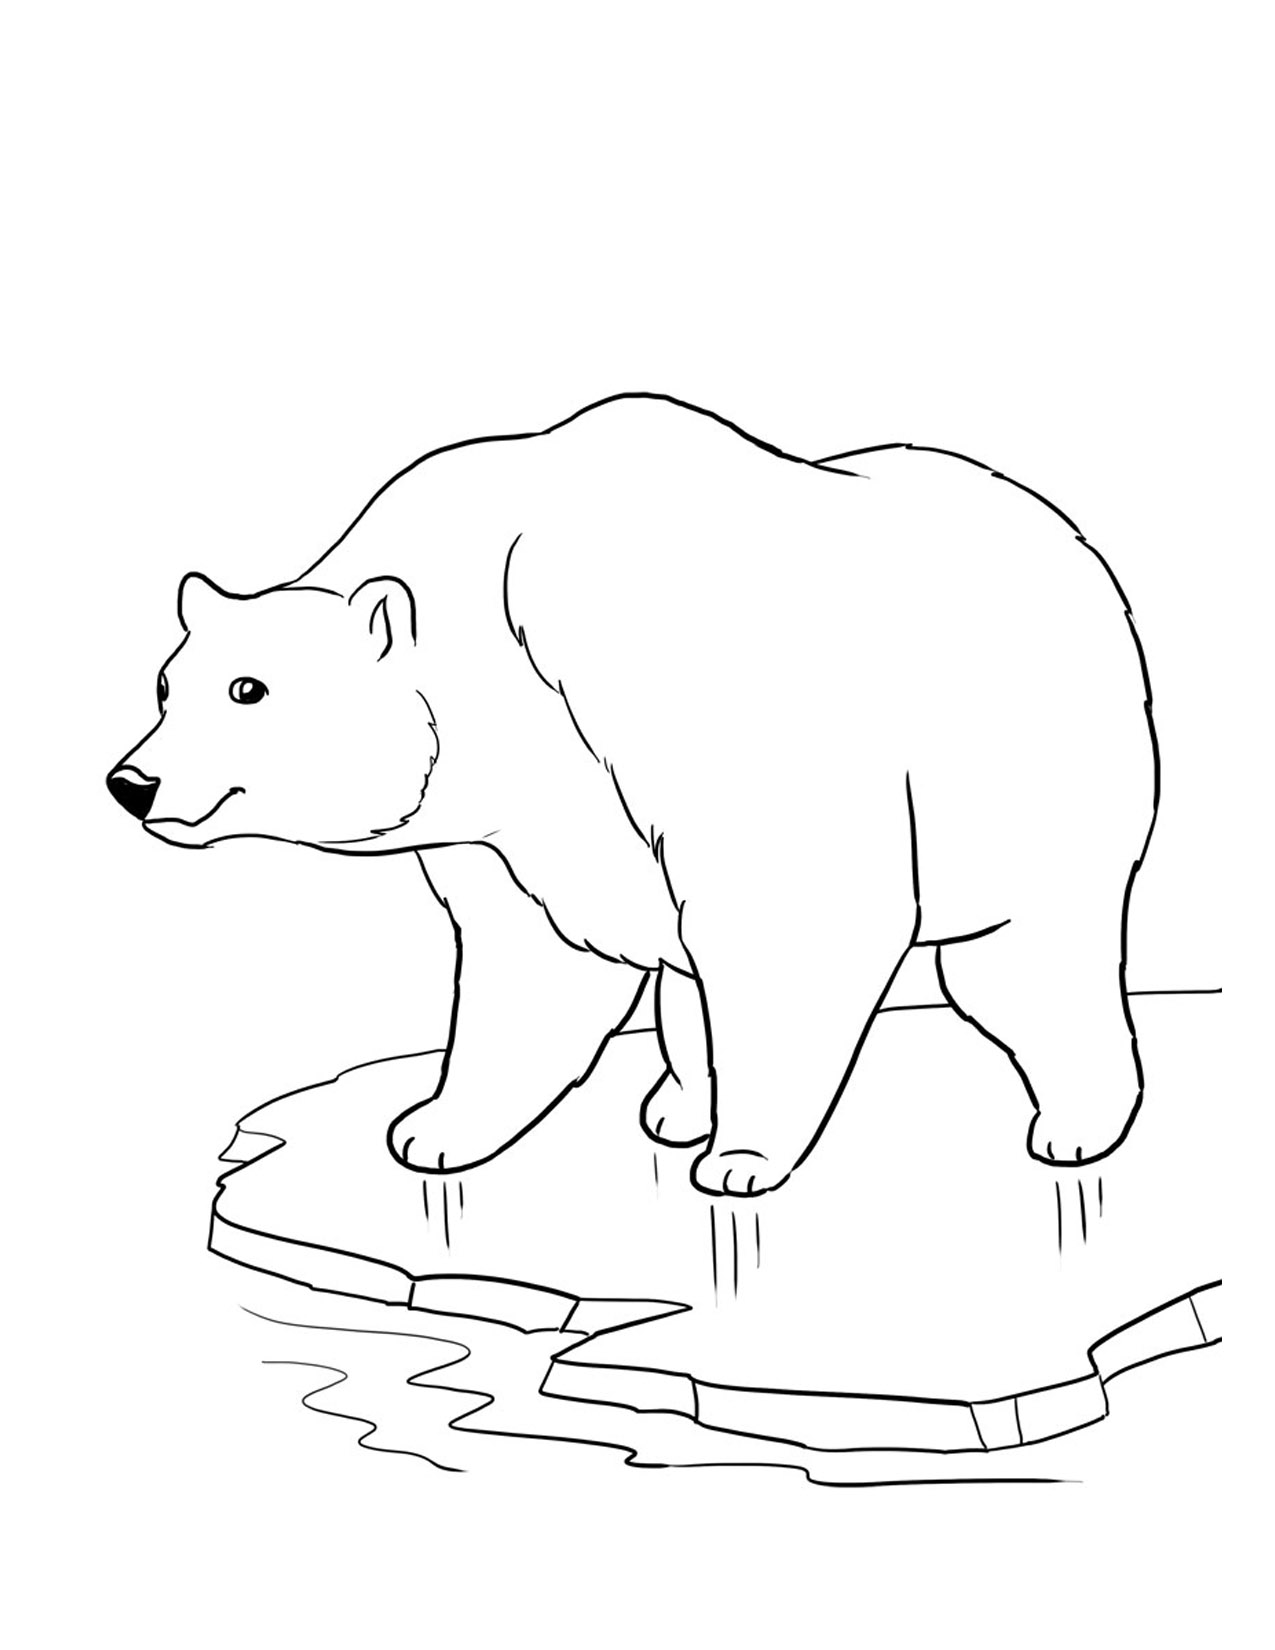 coloring pages of bears printable teddy bear coloring pages for kids cool2bkids bears of coloring pages